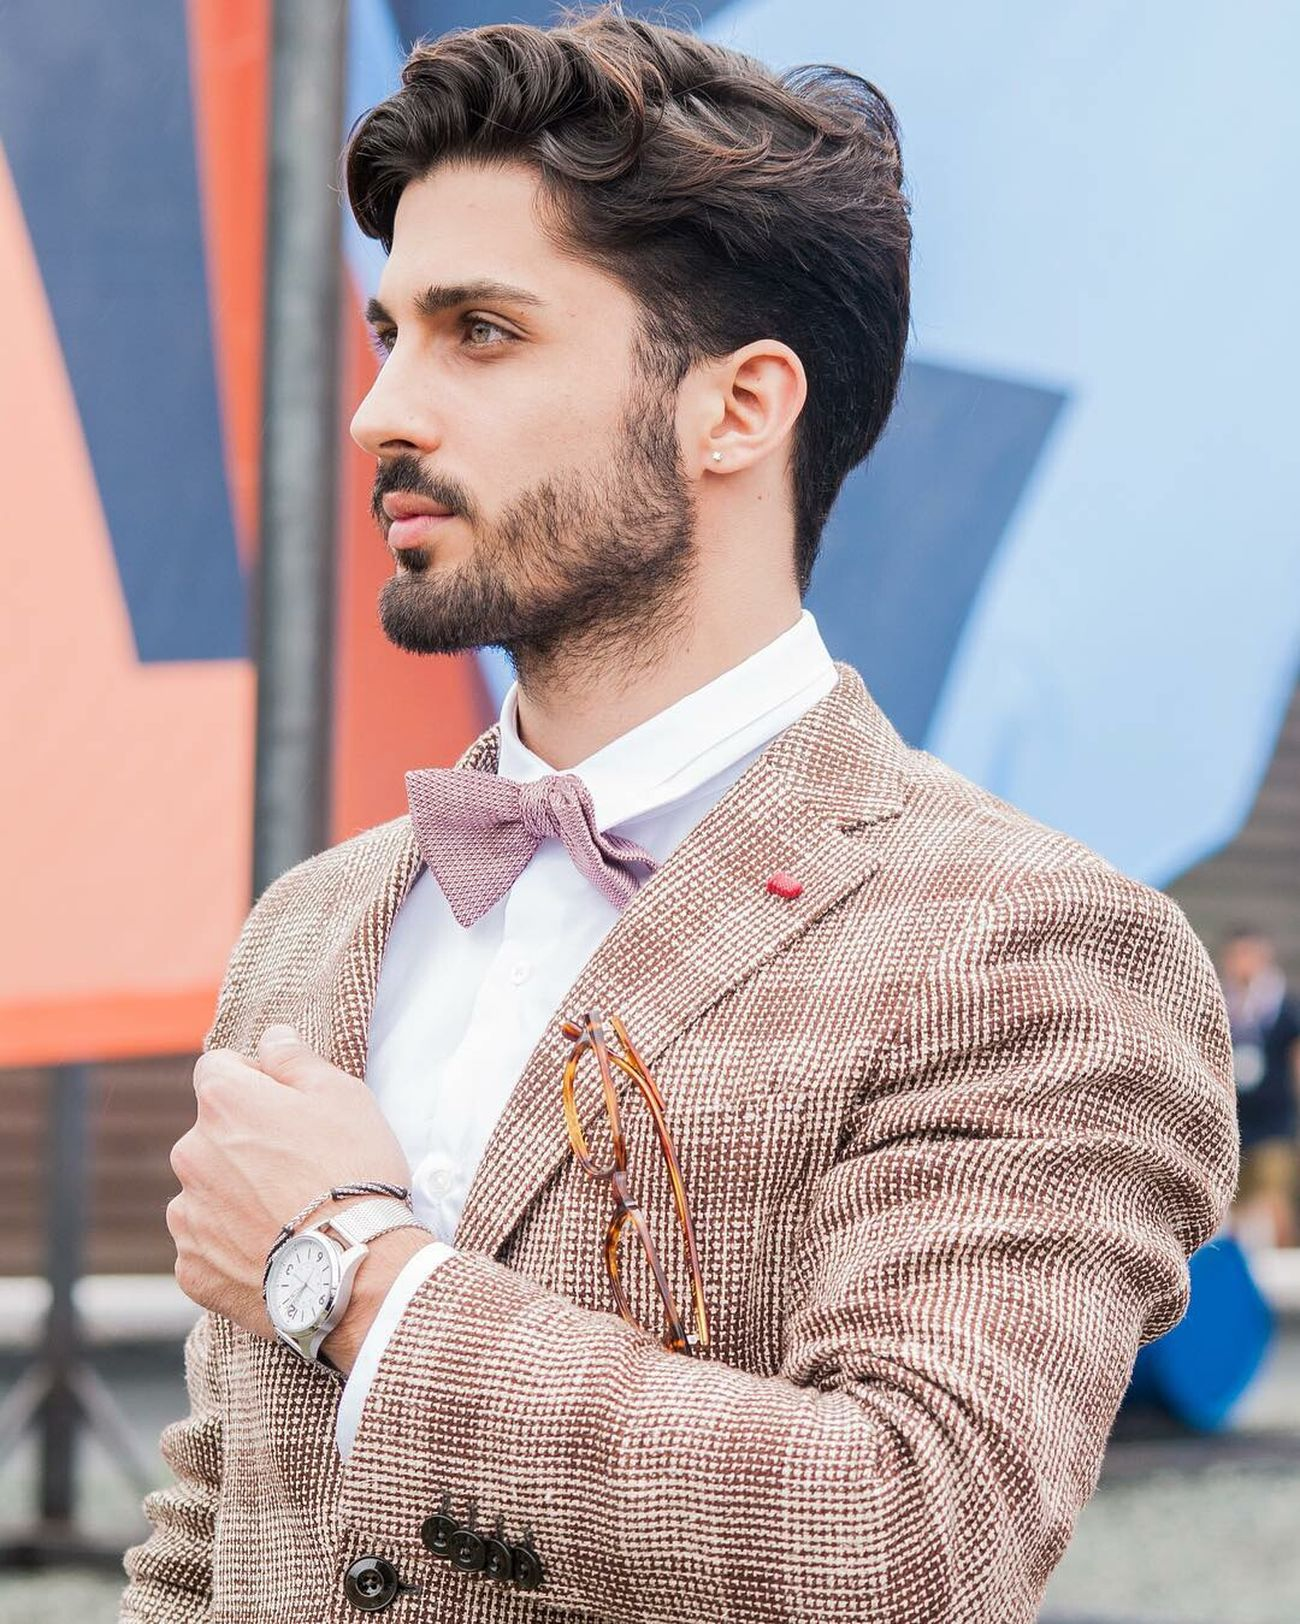 Hi friends, I'm proud to present you my first outfit of PITTI UOMO , follow my updates in snapchat and tell me if you like my outfit #marcoparrino pitti thanks to Sartoria Latorre Beautiful Happy Italy Fashion Outfit Style Man Vogue Blogger Outfit OOTDBlog Eyes Hairstyle Hair Pittiuomo